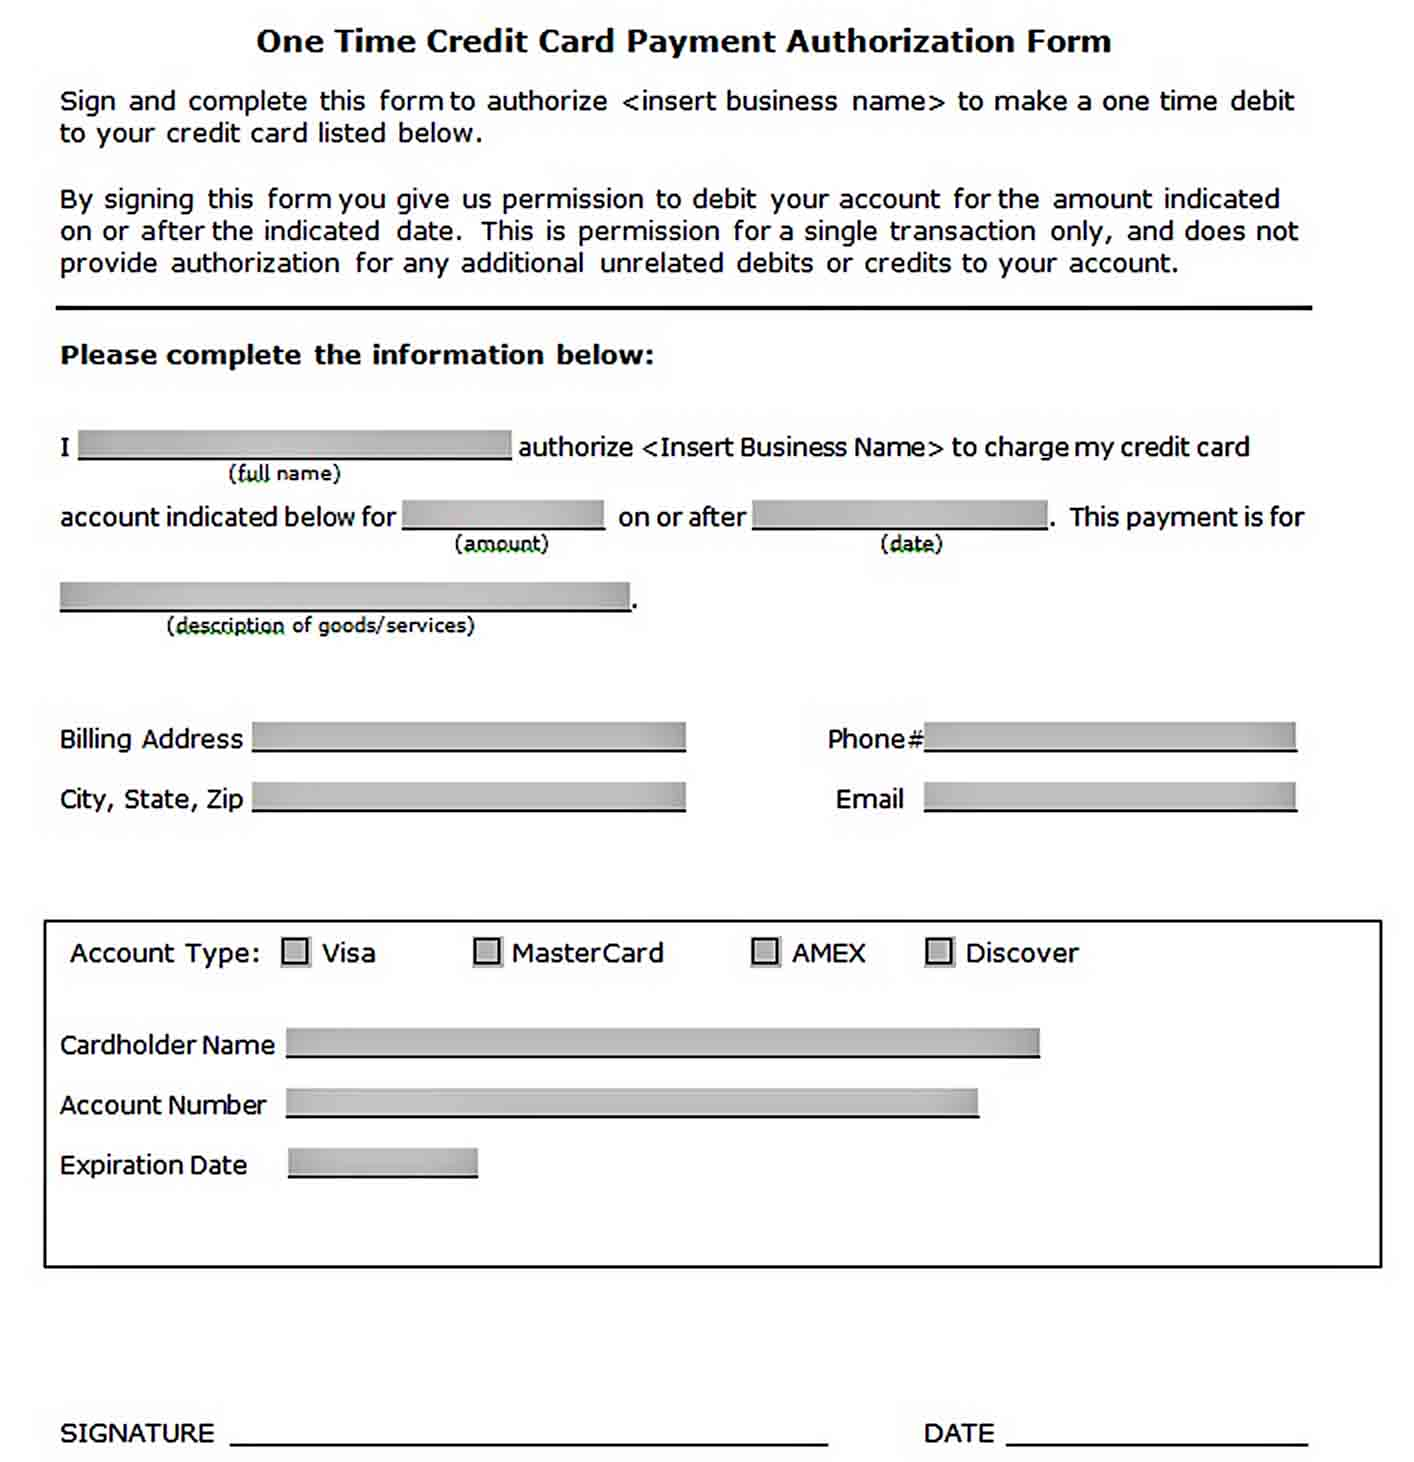 One Time Credit Card Payment Authorization Form Template sample